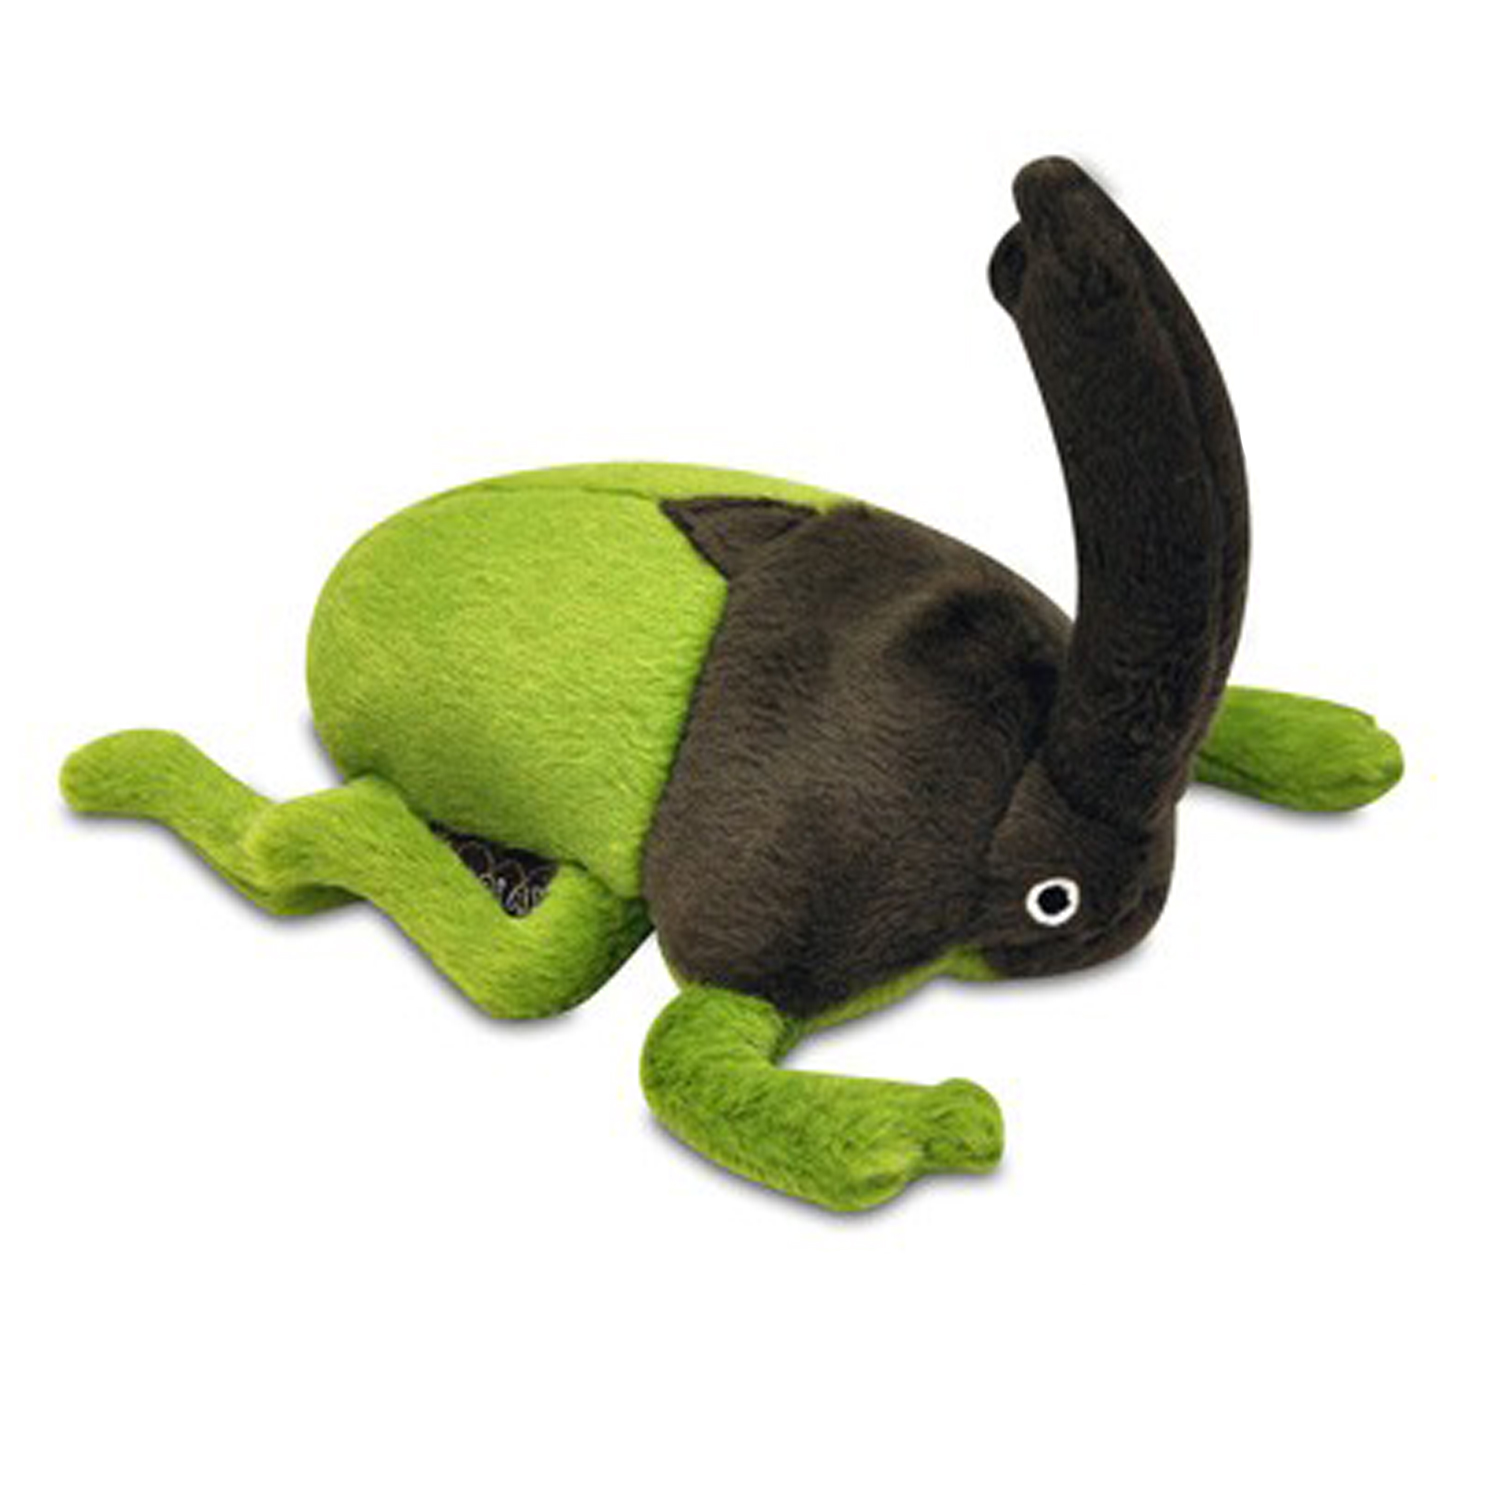 P L A Y Bugging Out Plush Dog Toy Rhino Beetle with Same Day